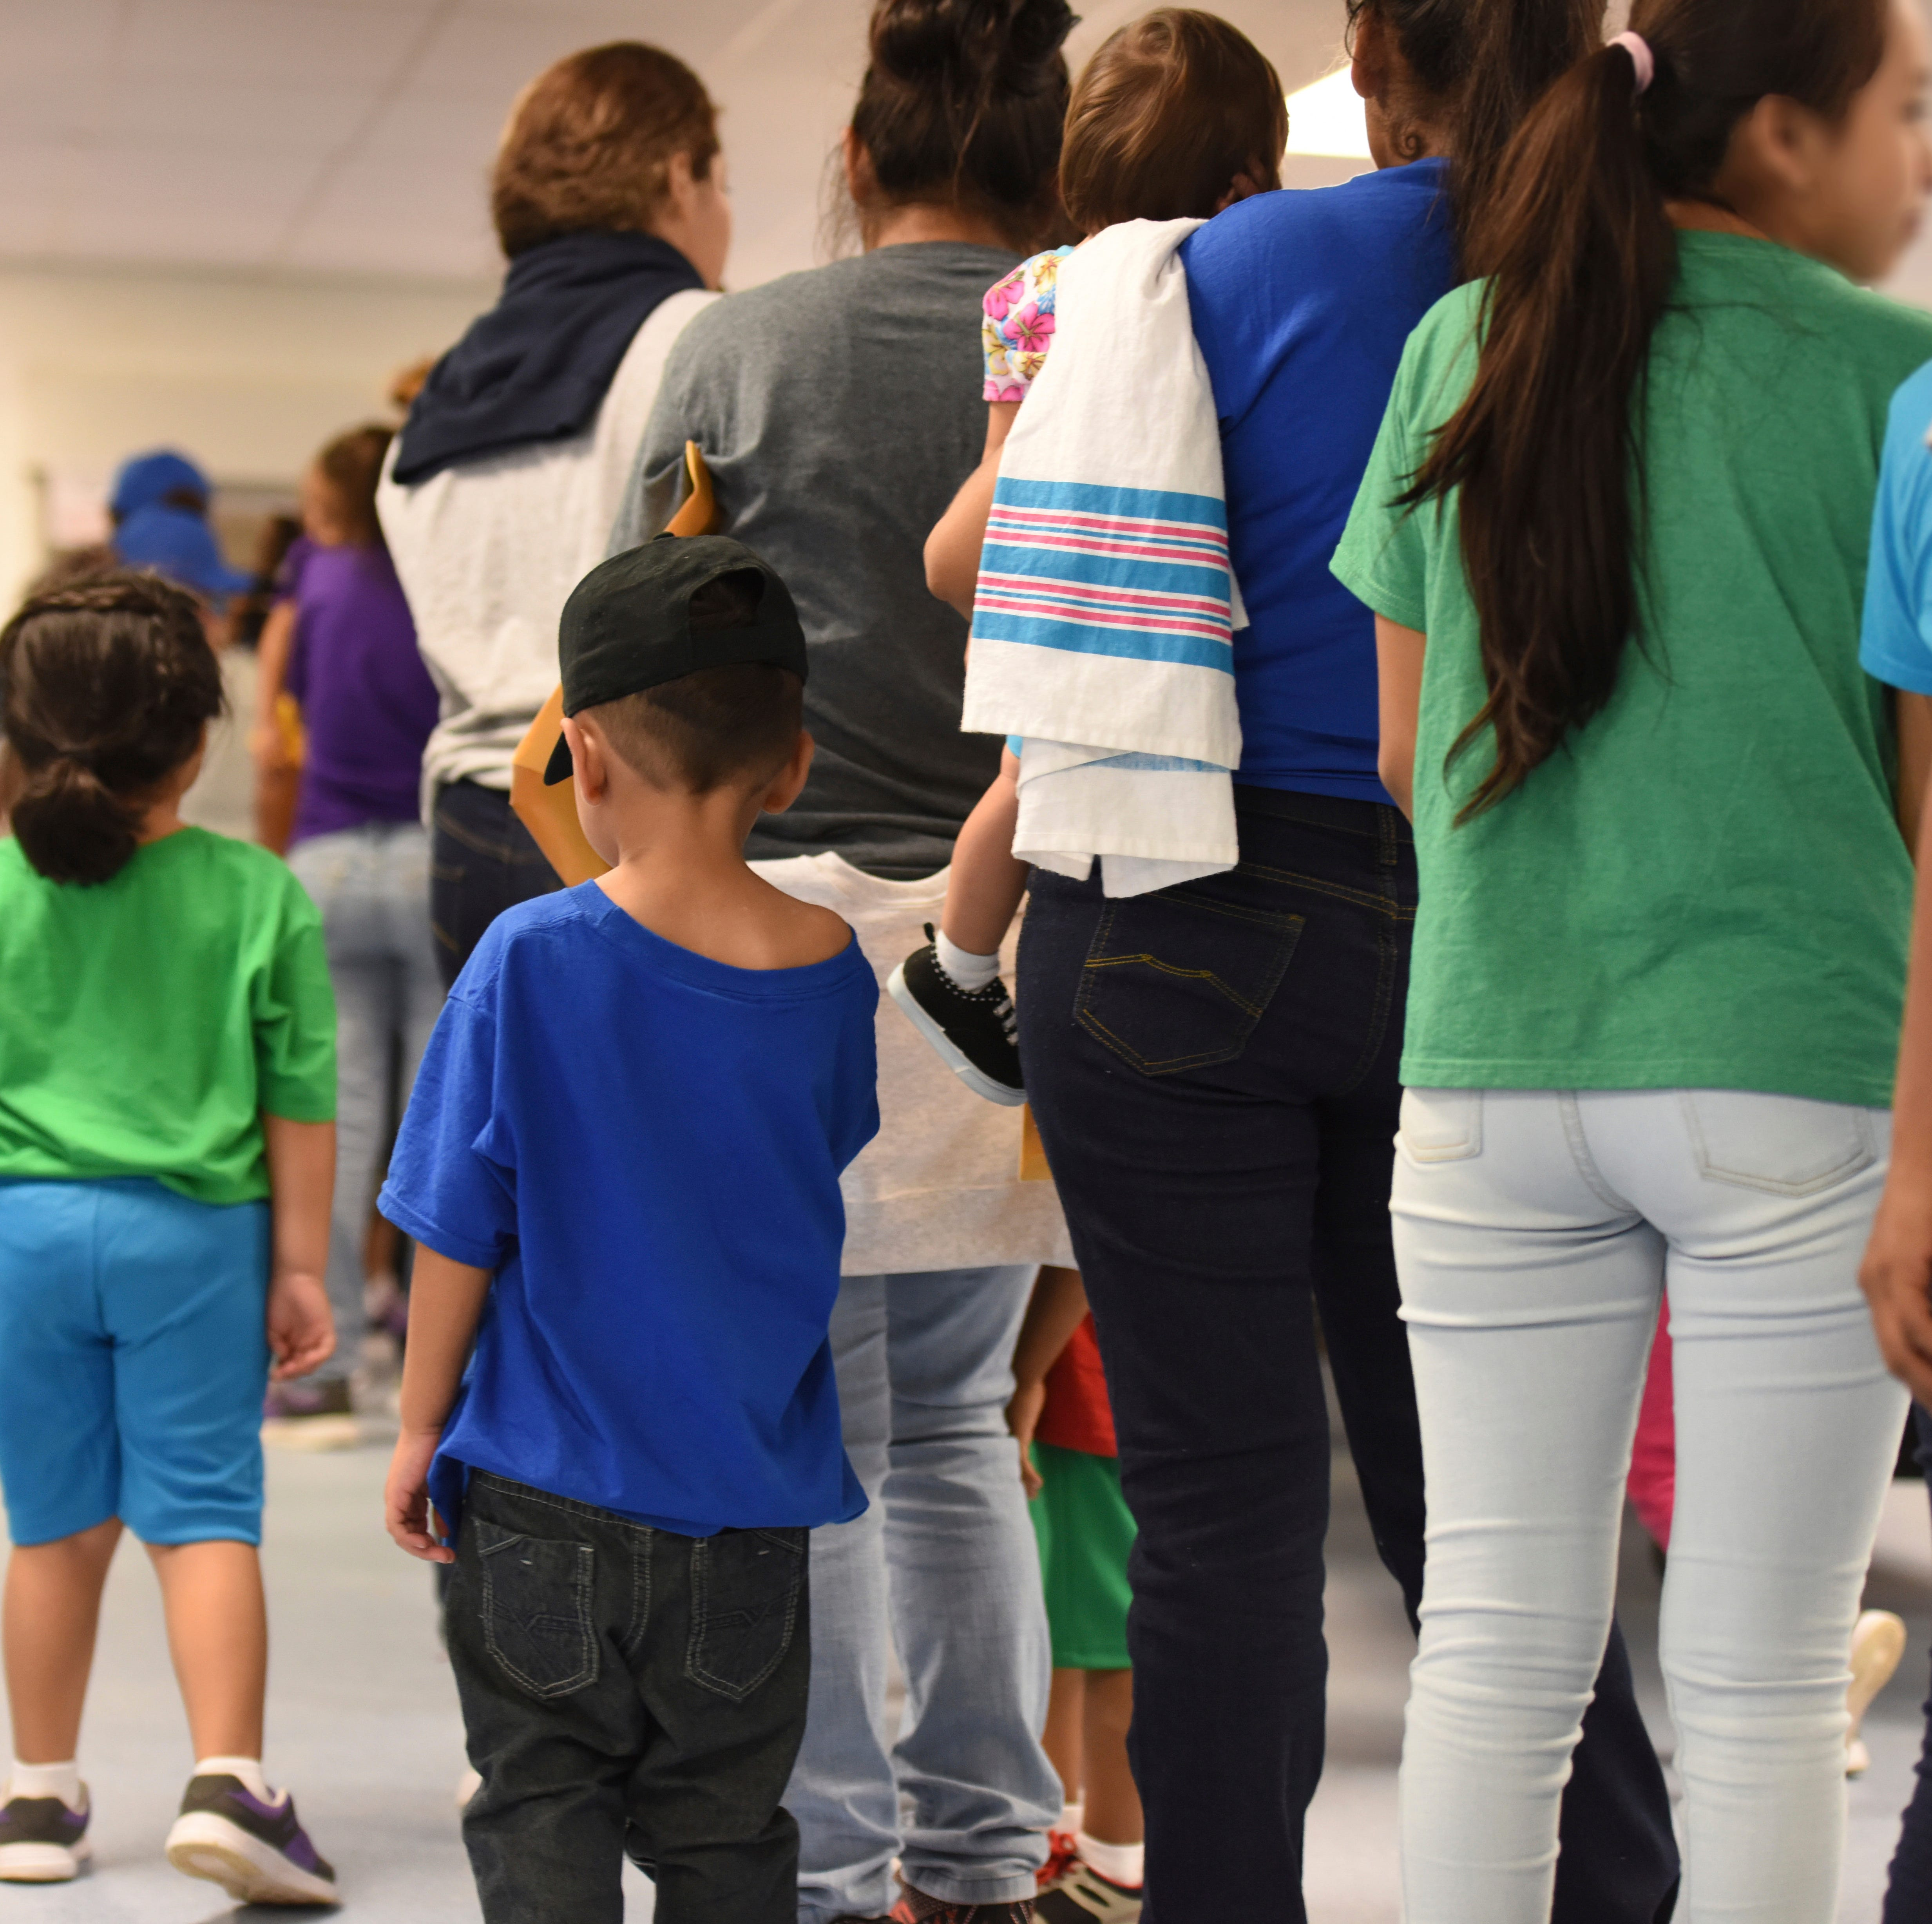 Opinion: Cold, uncaring treatment of immigrants reflects people's hearts